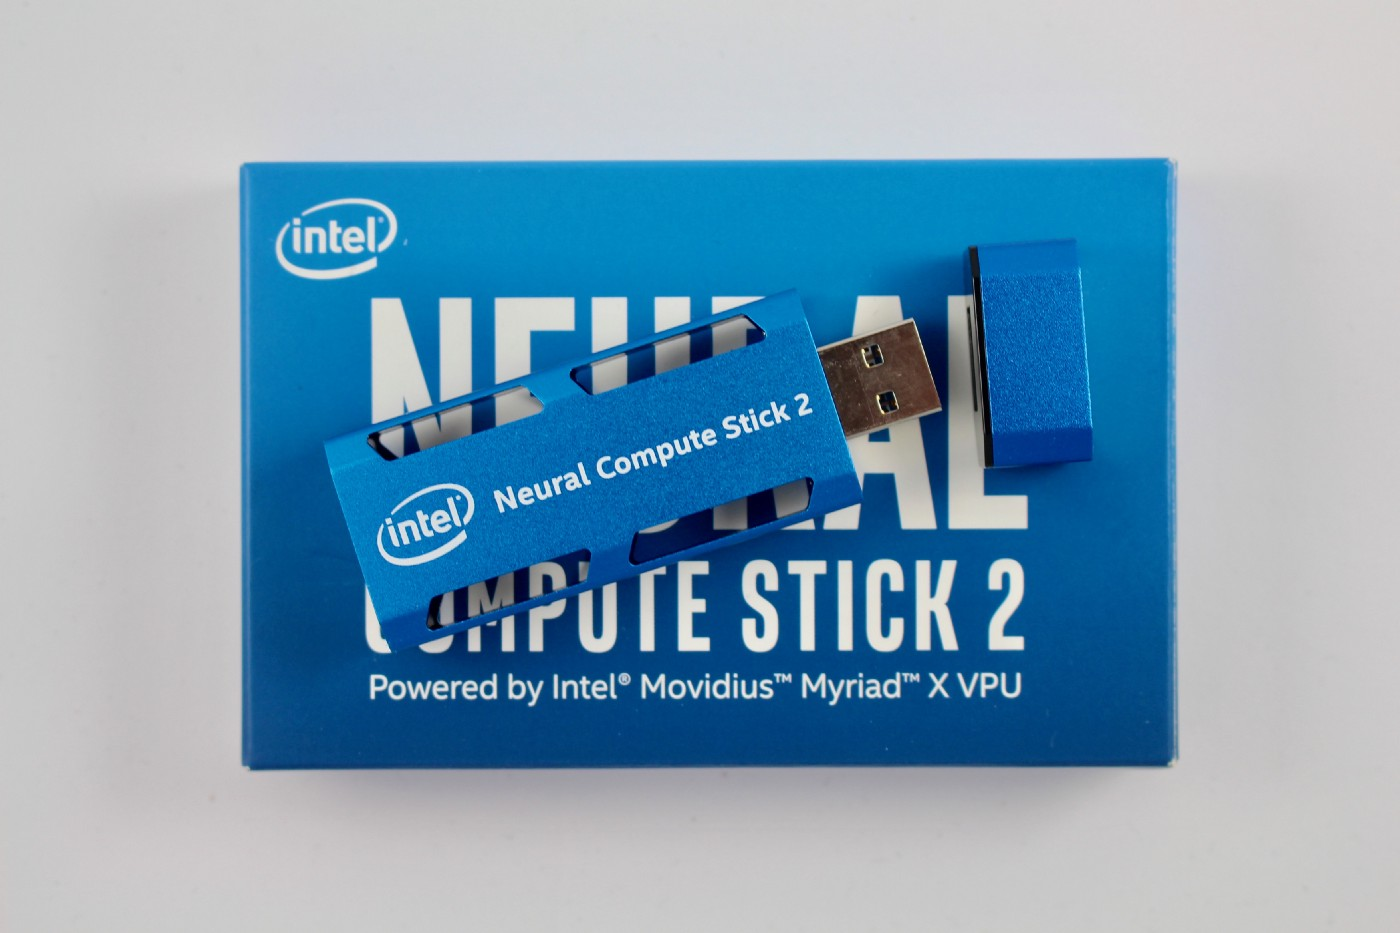 Getting Started with the Intel Neural Compute Stick 2 and the